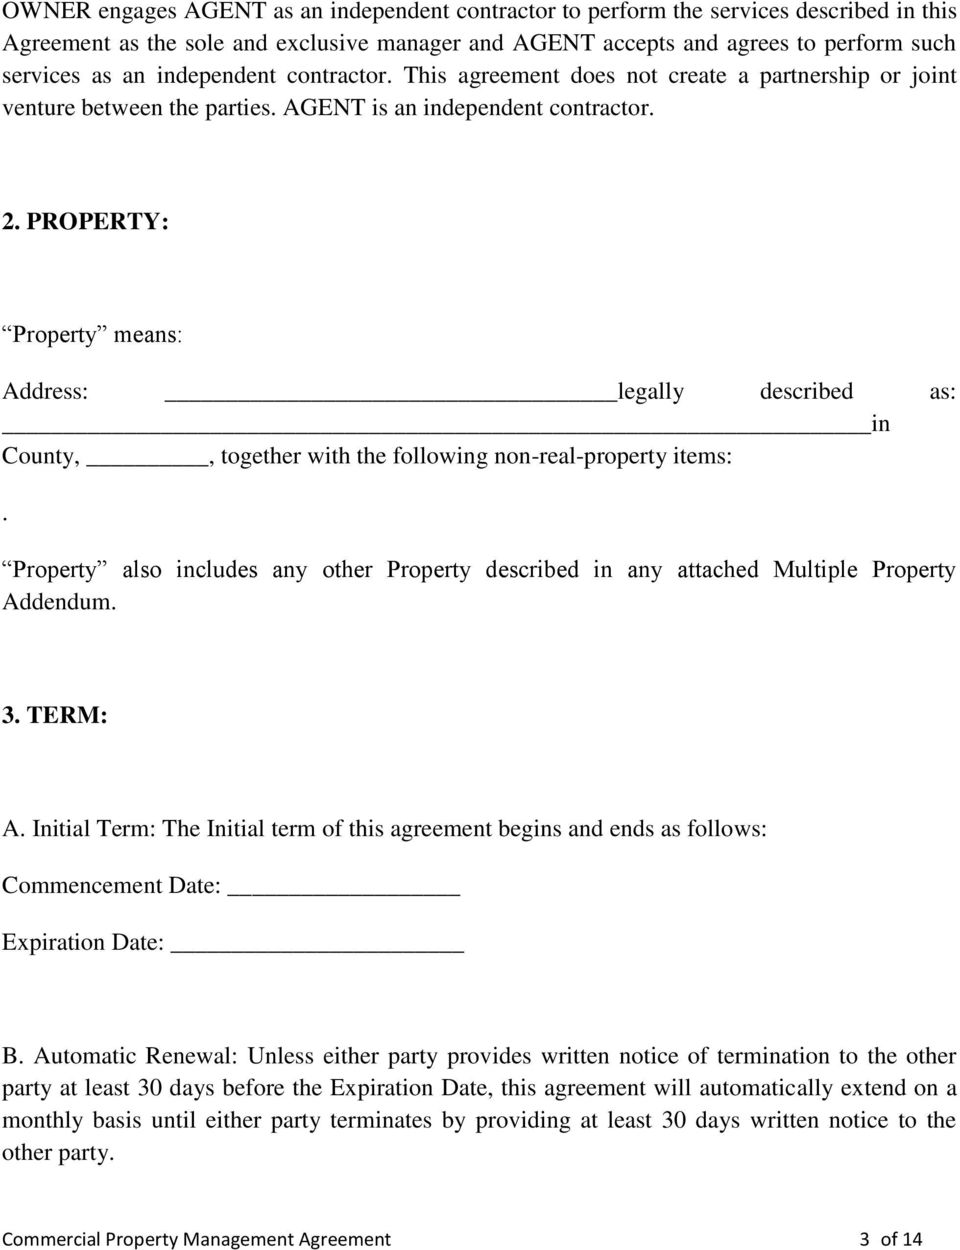 PROPERTY: Property means: Address: legally described as: in County,, together with the following non-real-property items:.